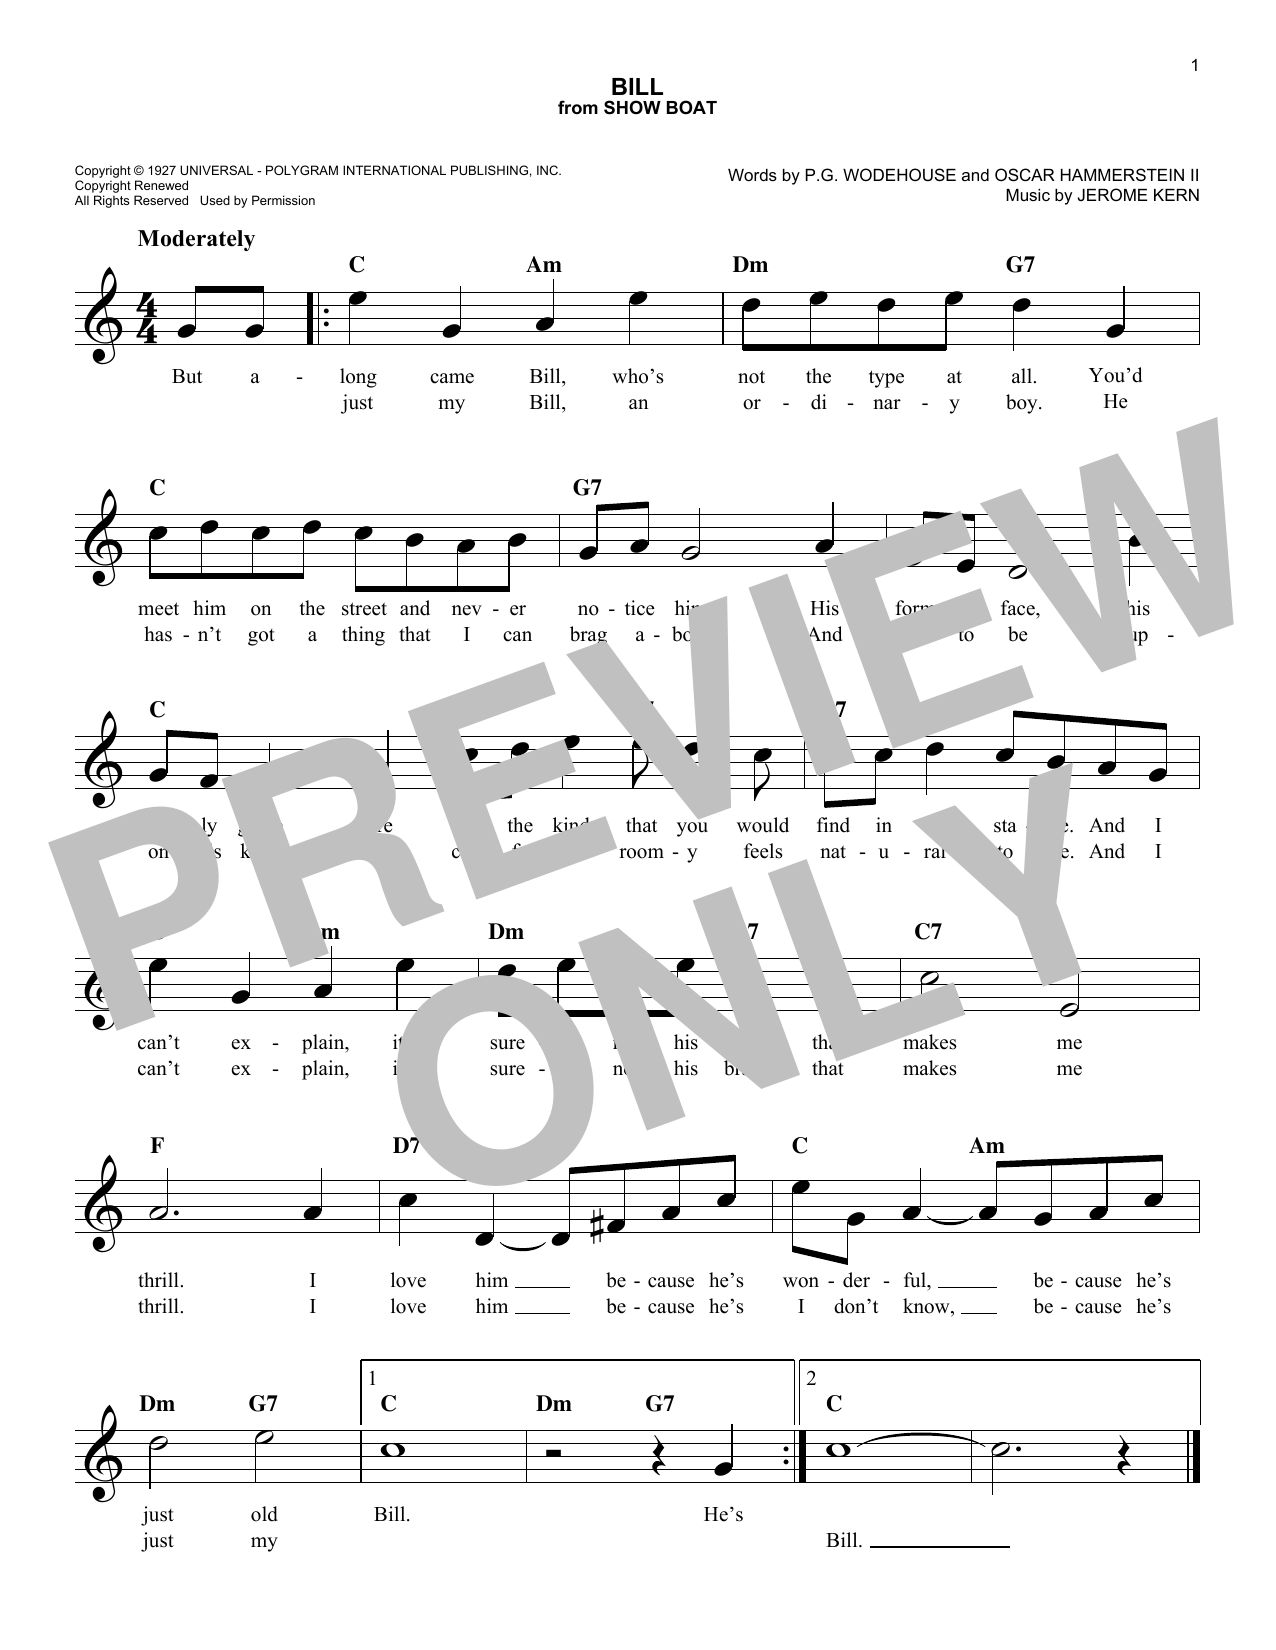 Oscar Hammerstein II Bill sheet music notes and chords. Download Printable PDF.